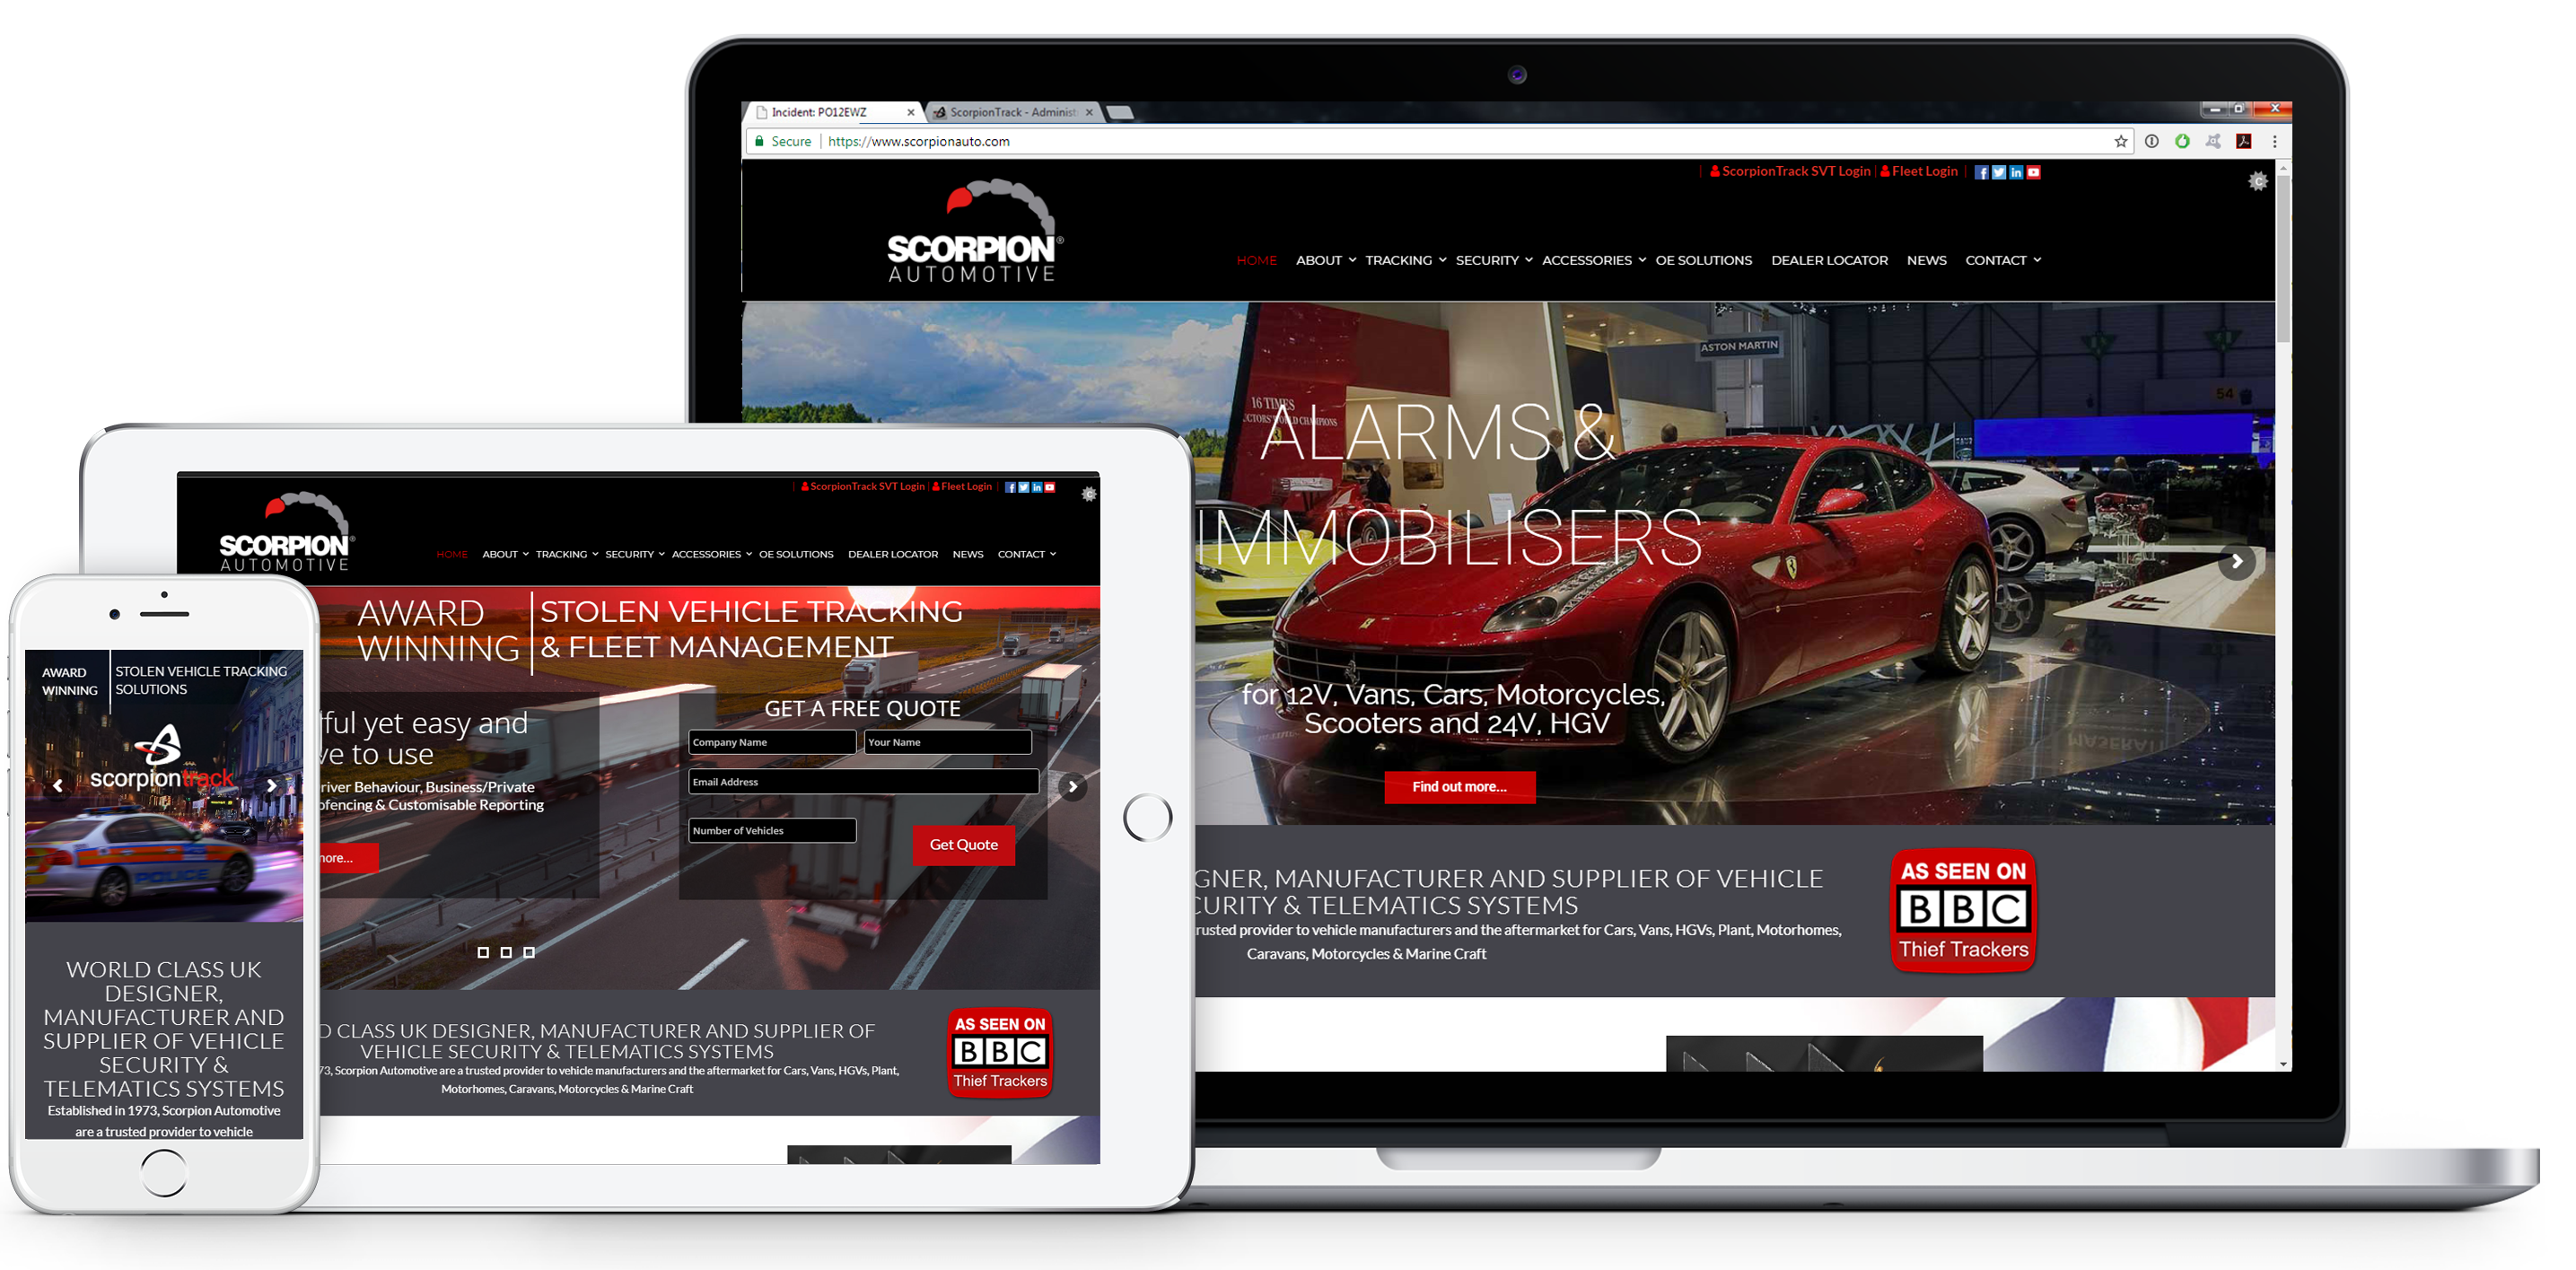 Scorpion Automotive website